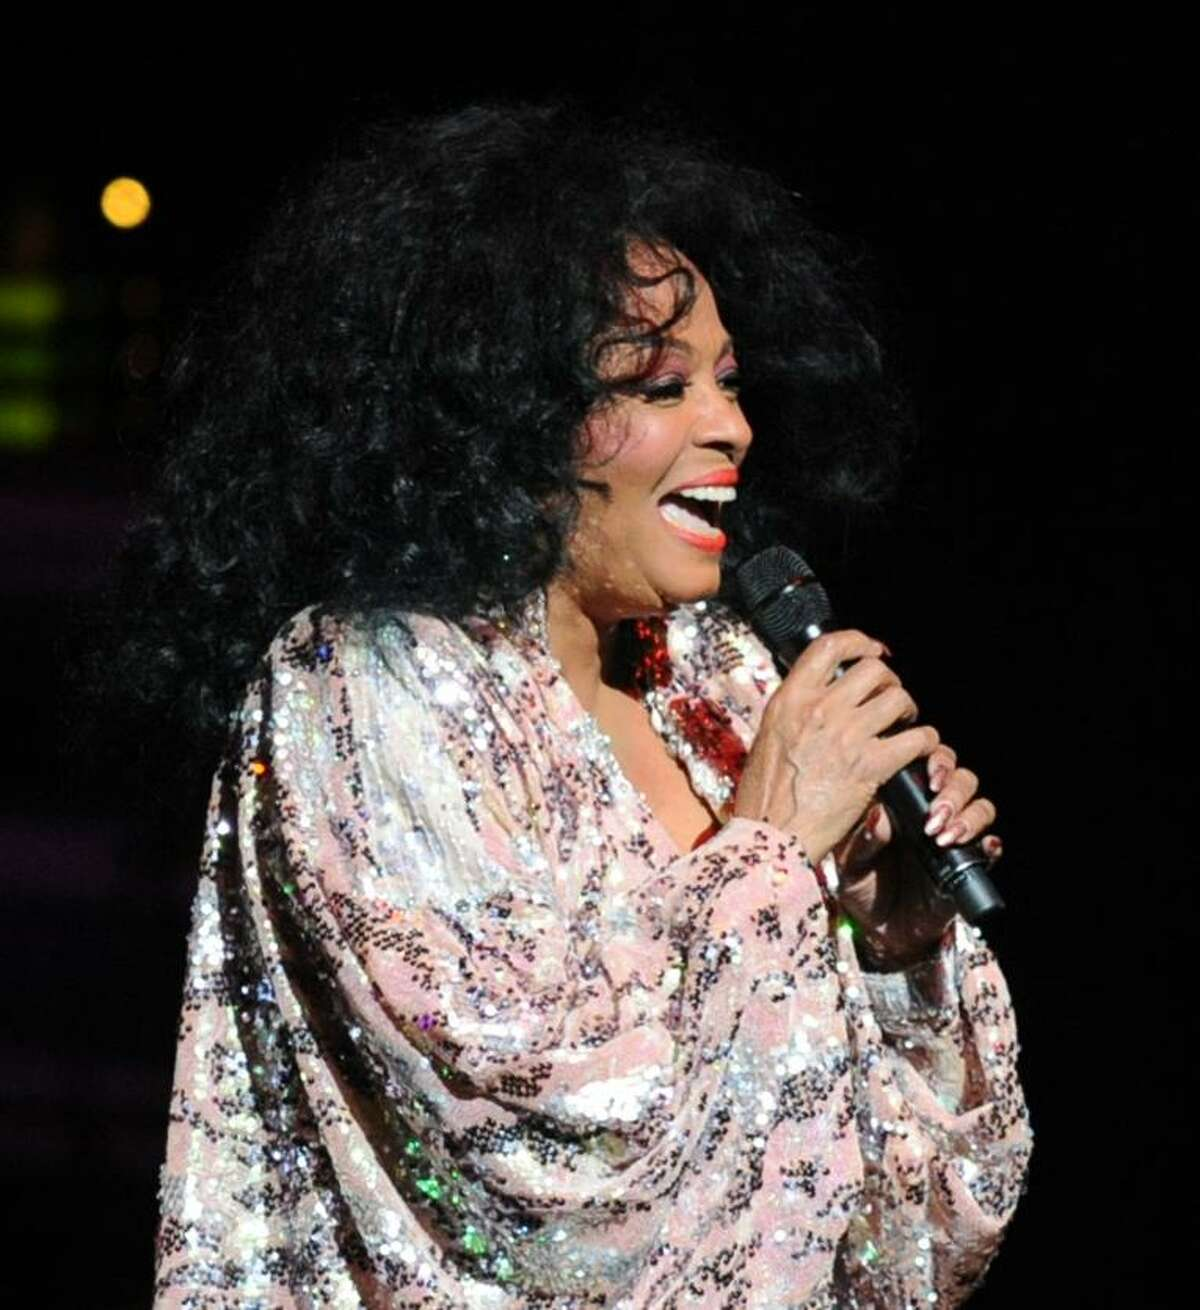 The Supremes frontwoman, solo superstar and actor has wowed audiences every times she's played the Majestic Theatre the last few years. Ross, who last year received the Medal of Freedom from the president, still coos her Motown hits like